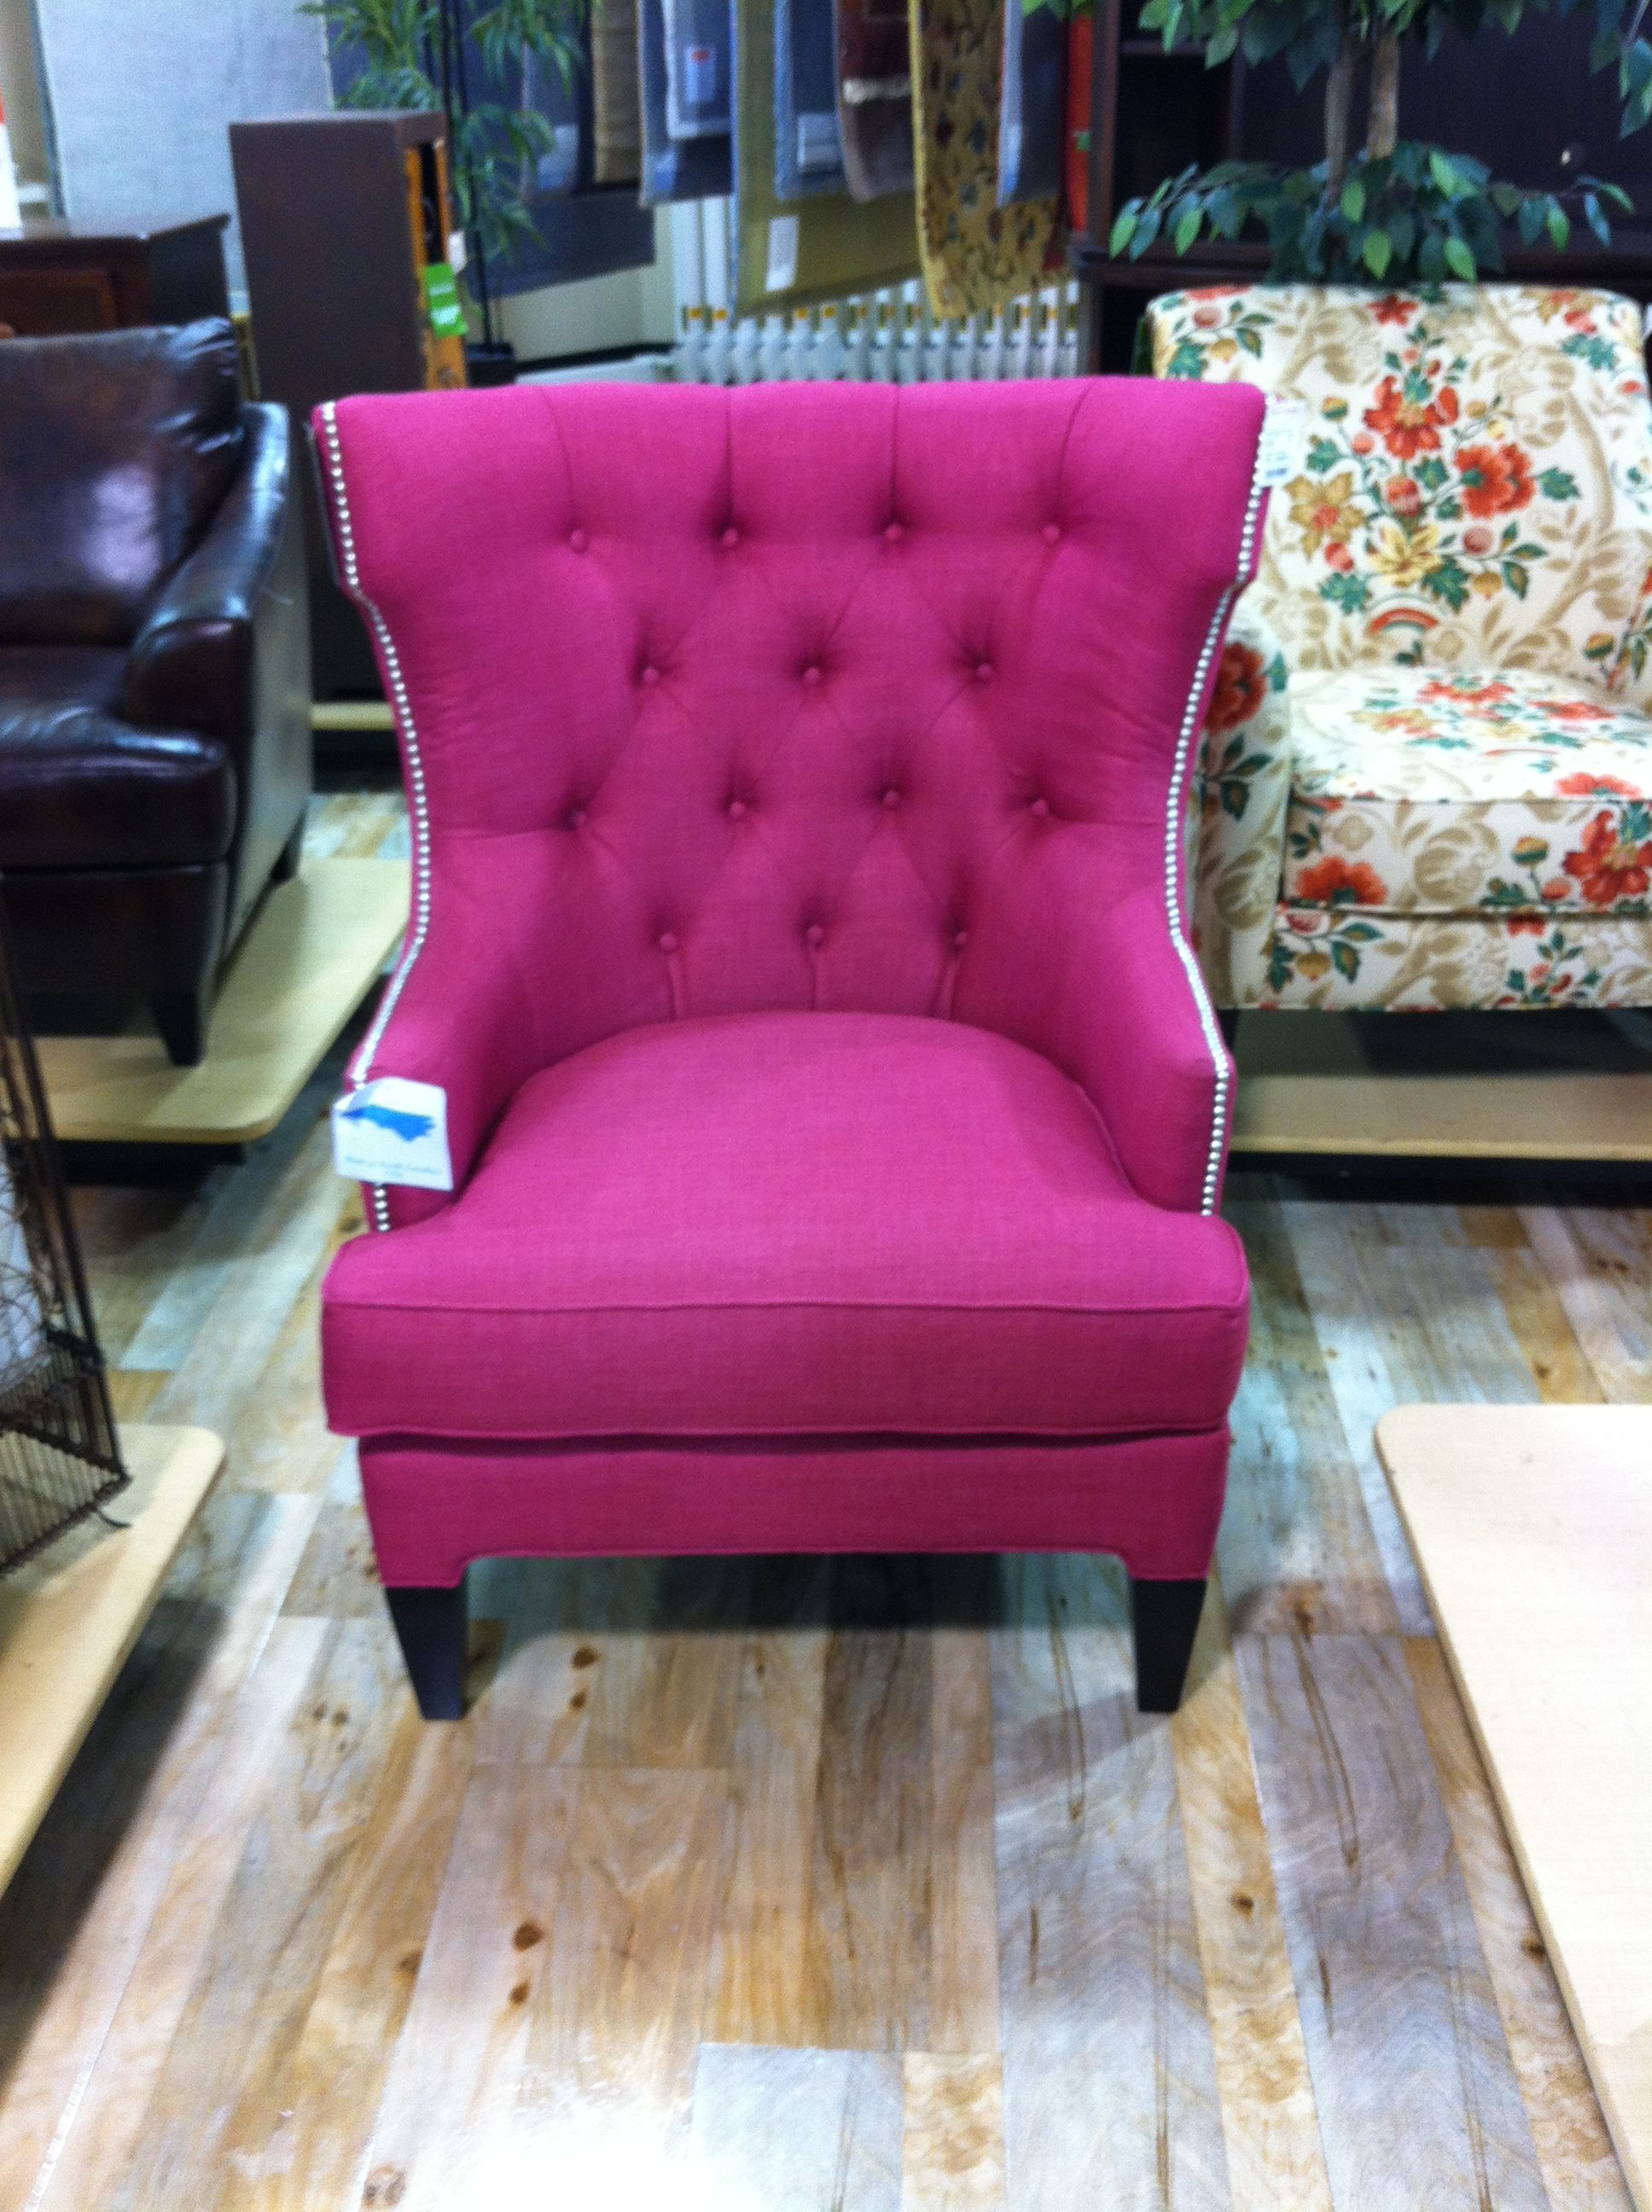 Dining Chairs At Marshalls Stretch Chair Covers Nz Pink Wingback Tufted With Nailhead Trim From